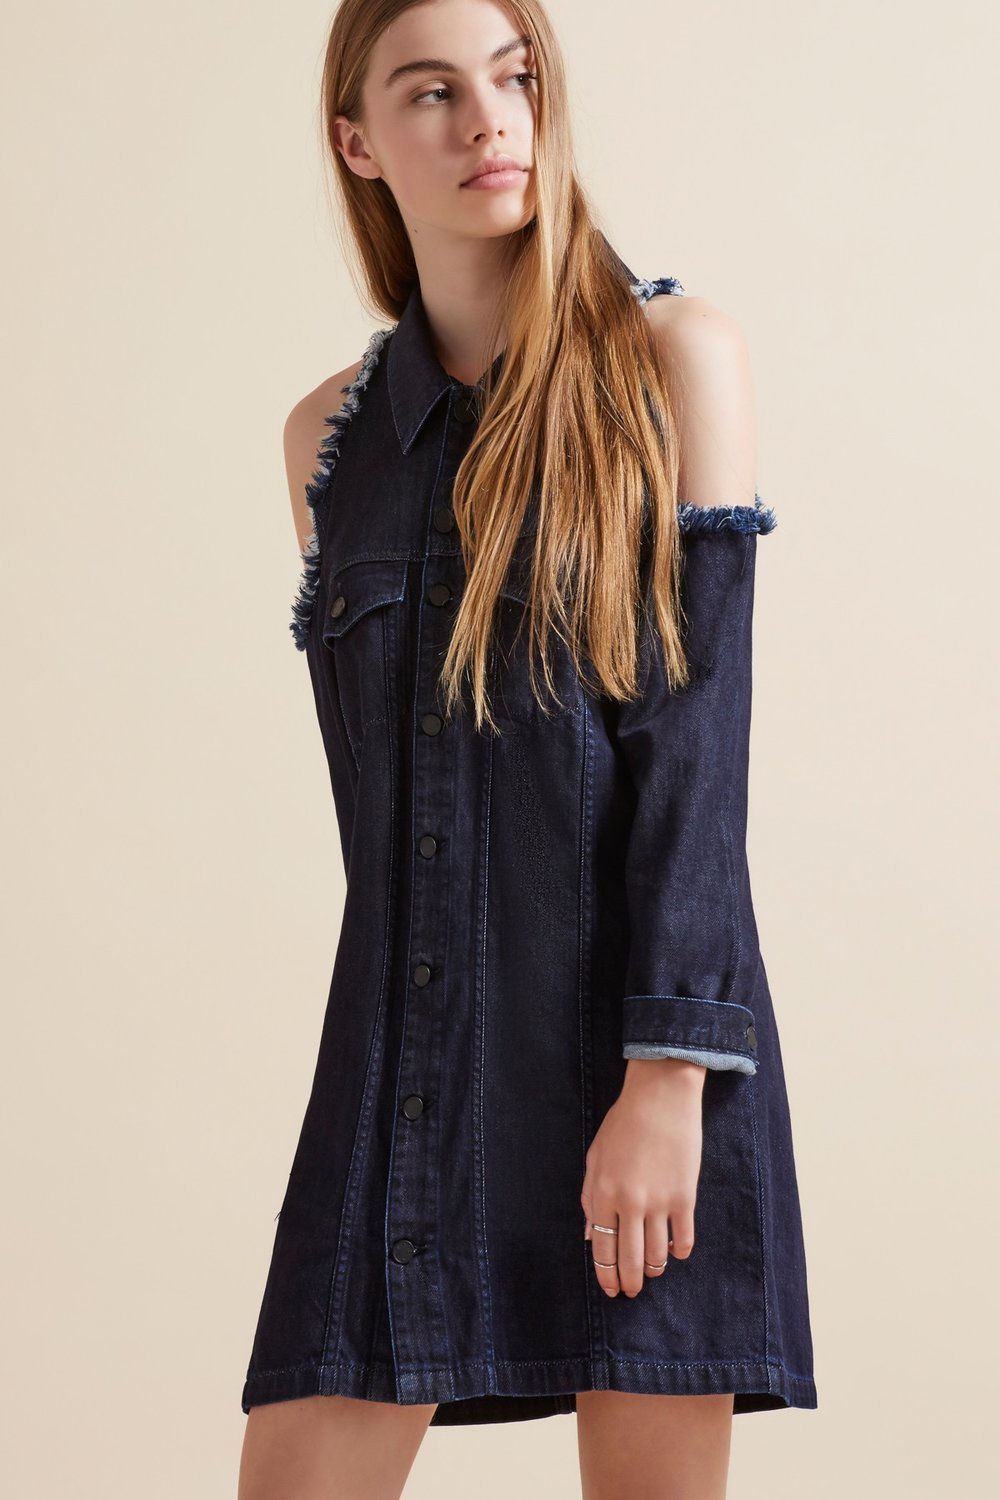 The Fifth Front Row Jacket Dress.